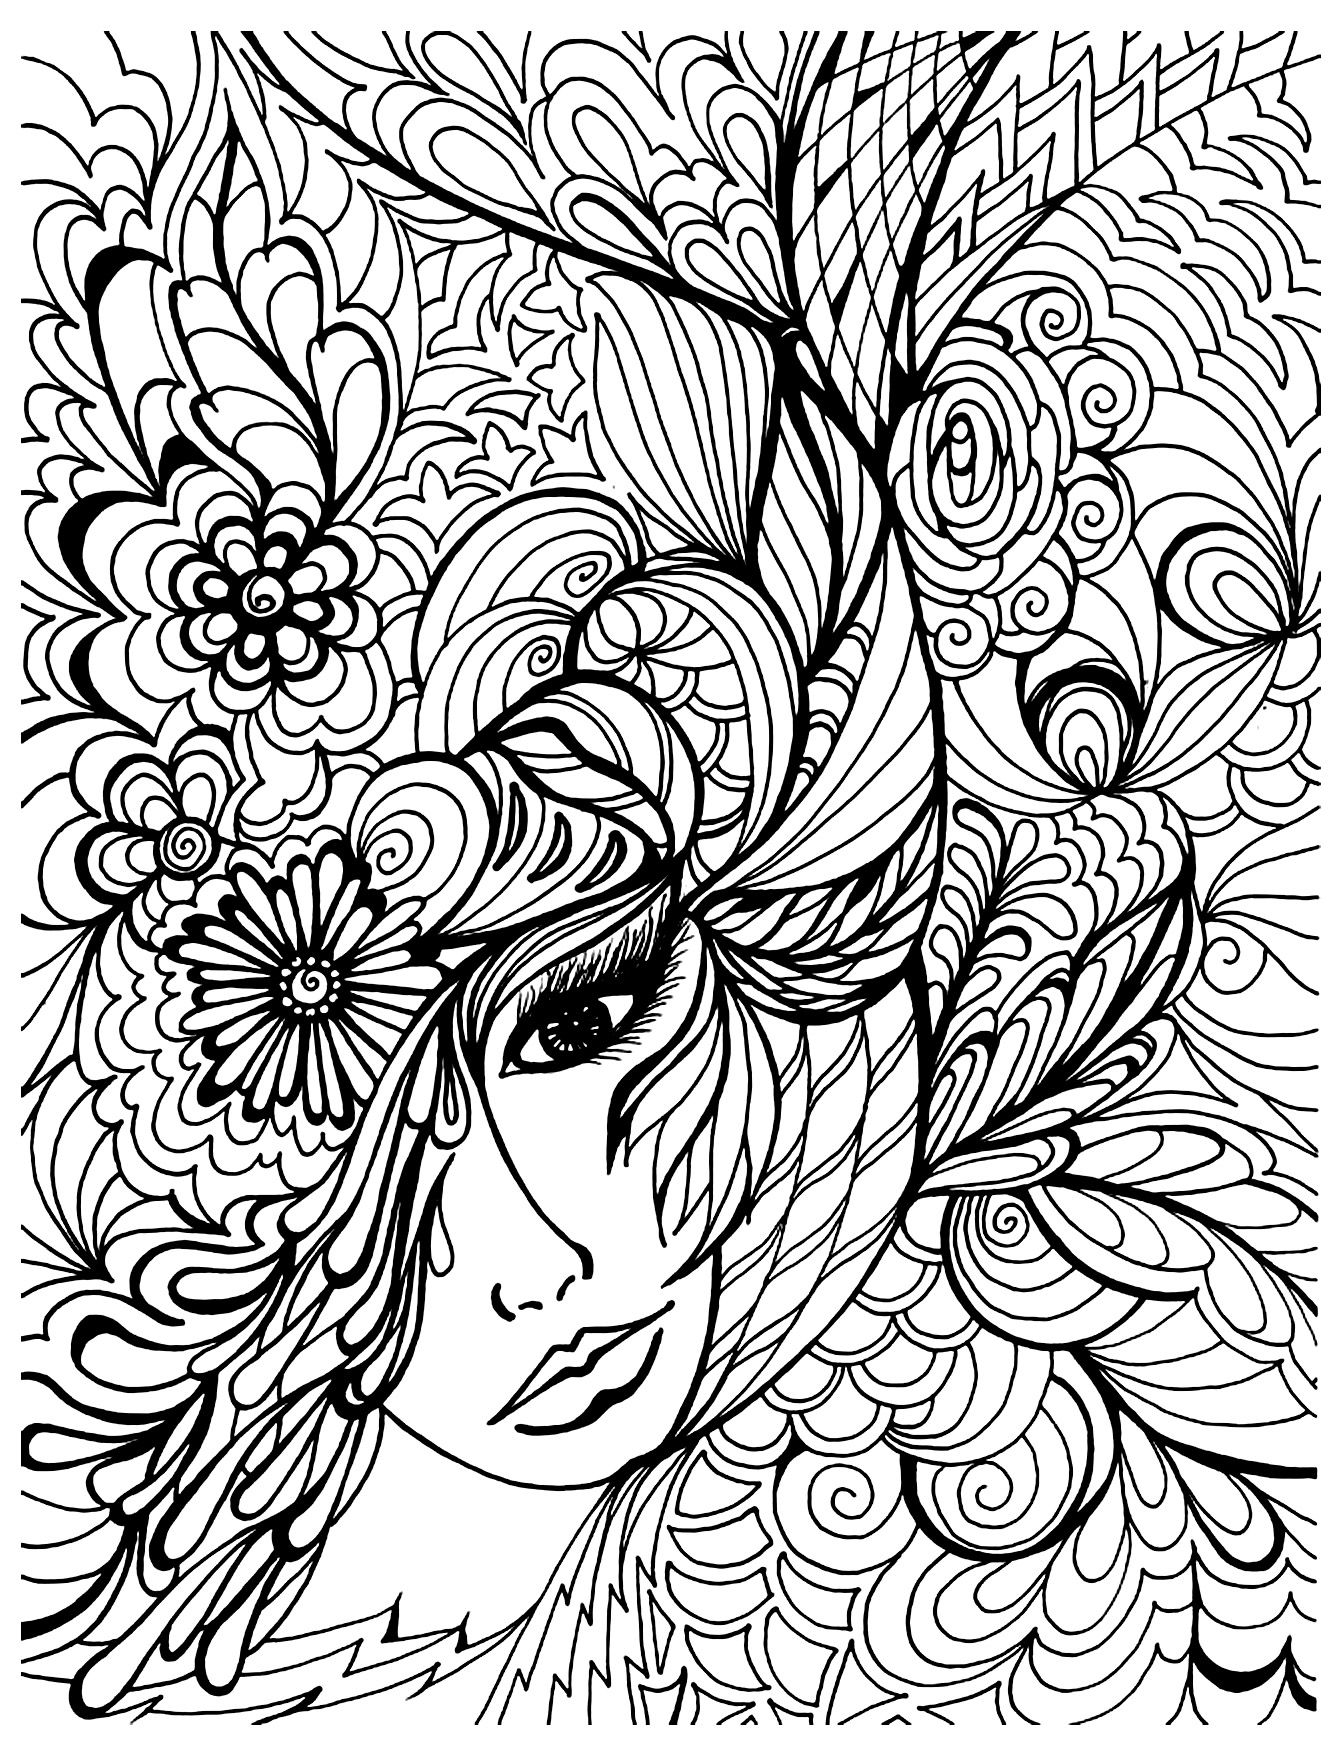 cool coloring pages for adults - geek chic 5 cool coloring books for grown ups